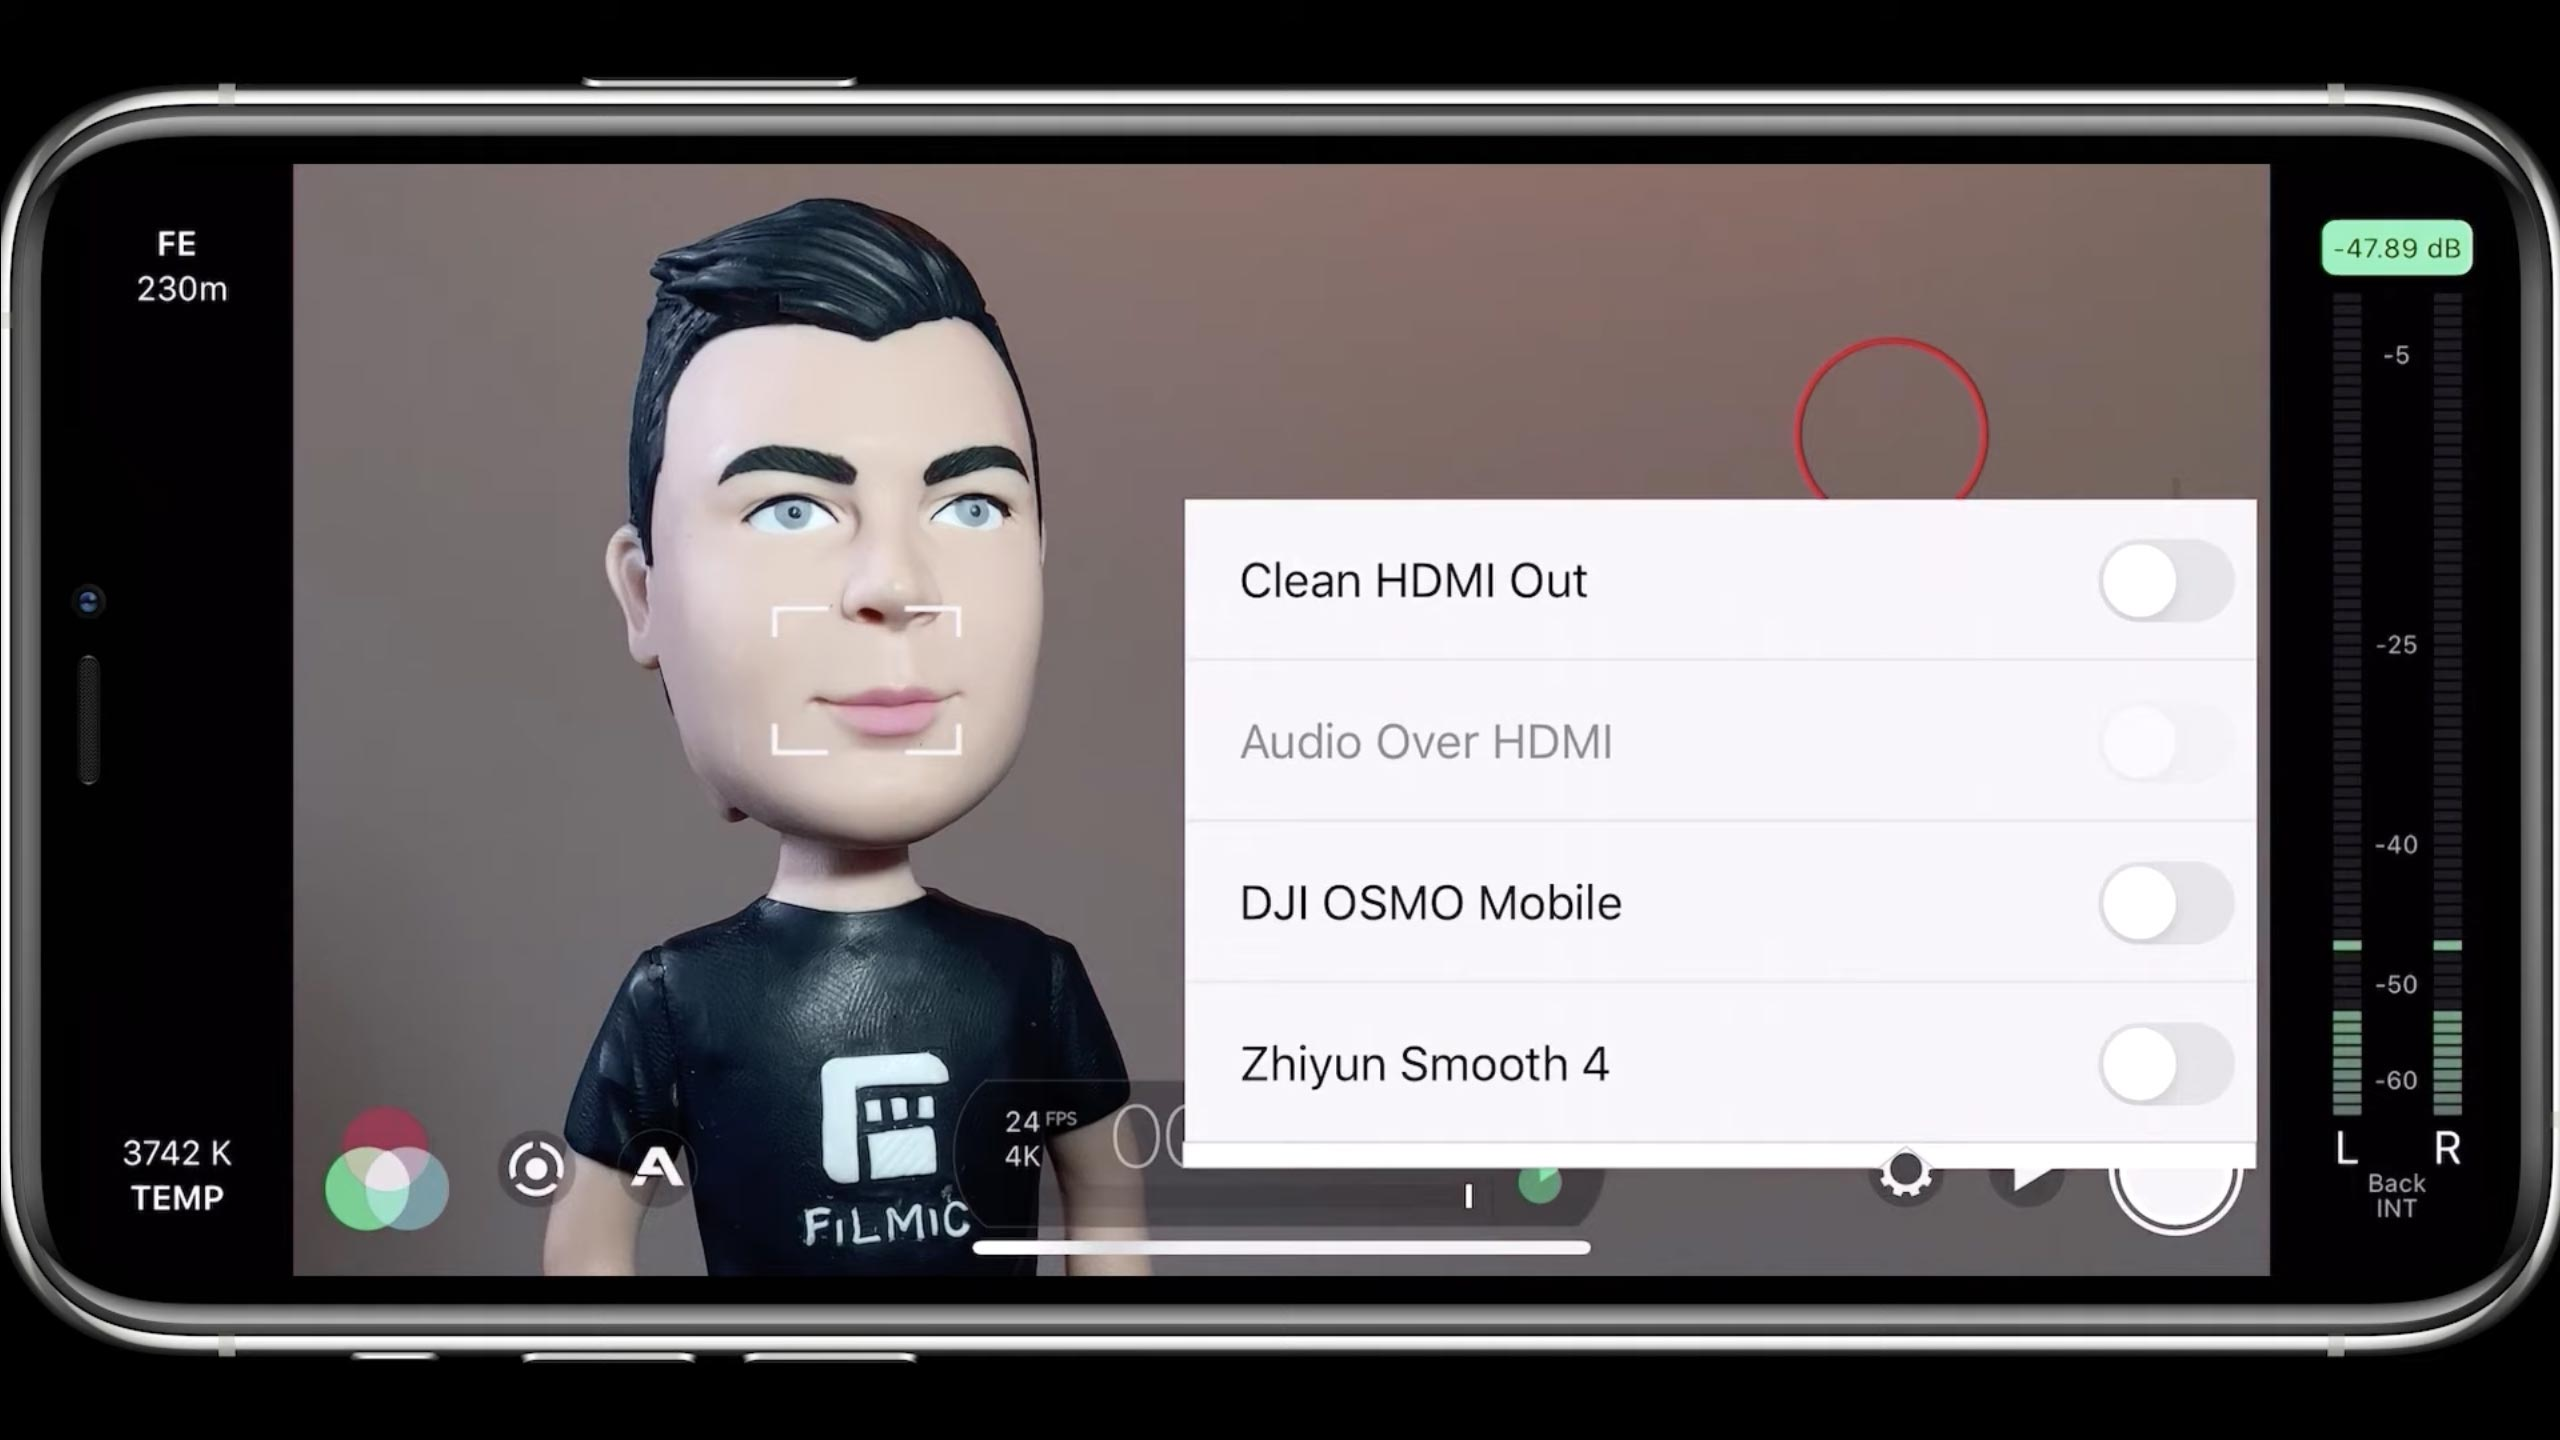 FiLMiC Pro cinema camera app gets Clean HDMI Output